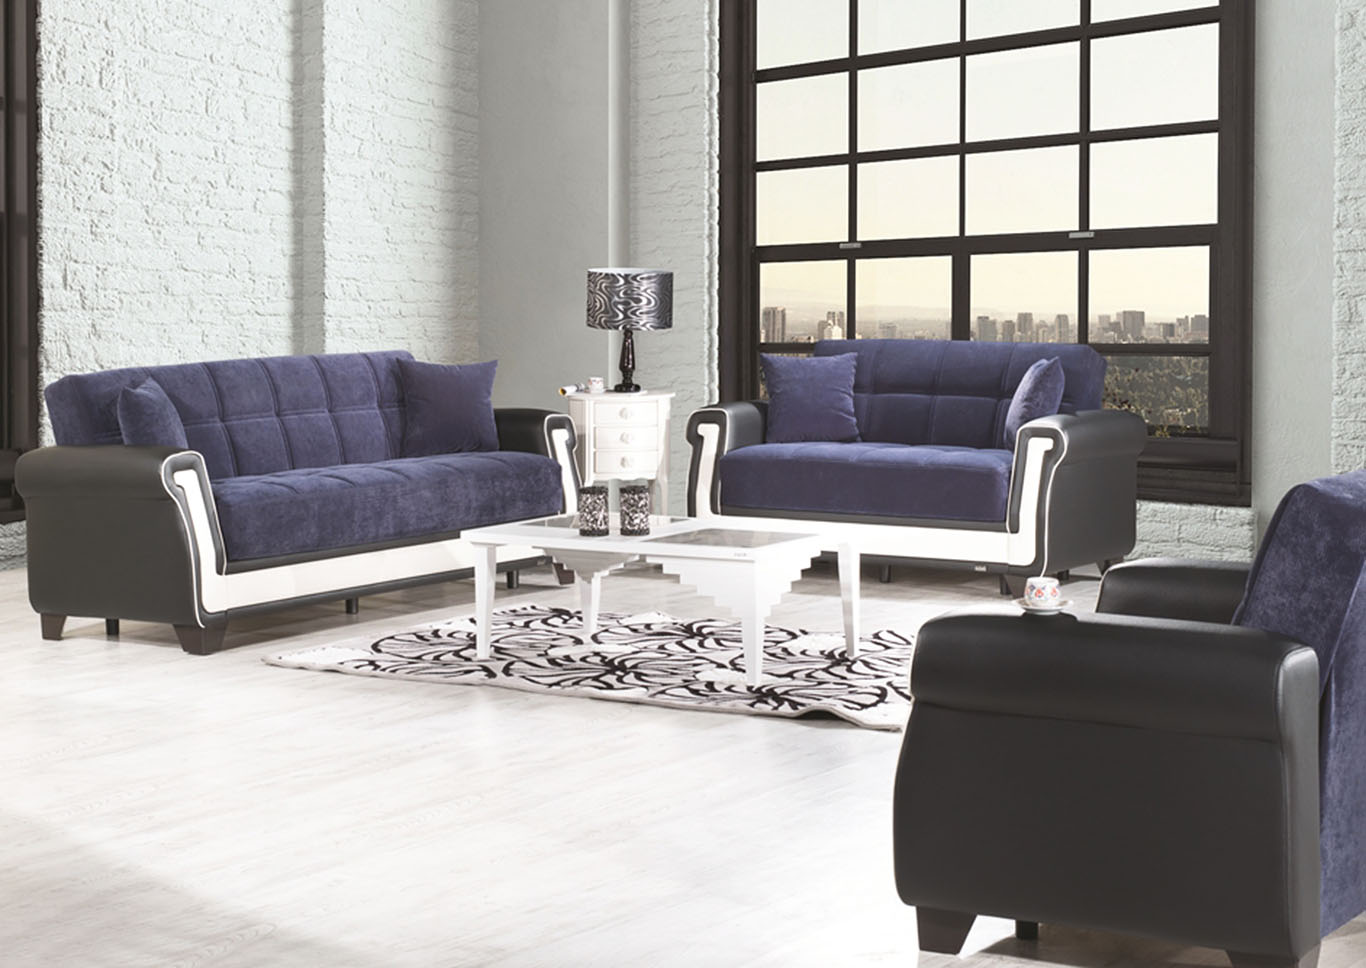 Proline Blue Microfiber Sofabed, Loveseat & Armchair,CasaMode Functional Furniture